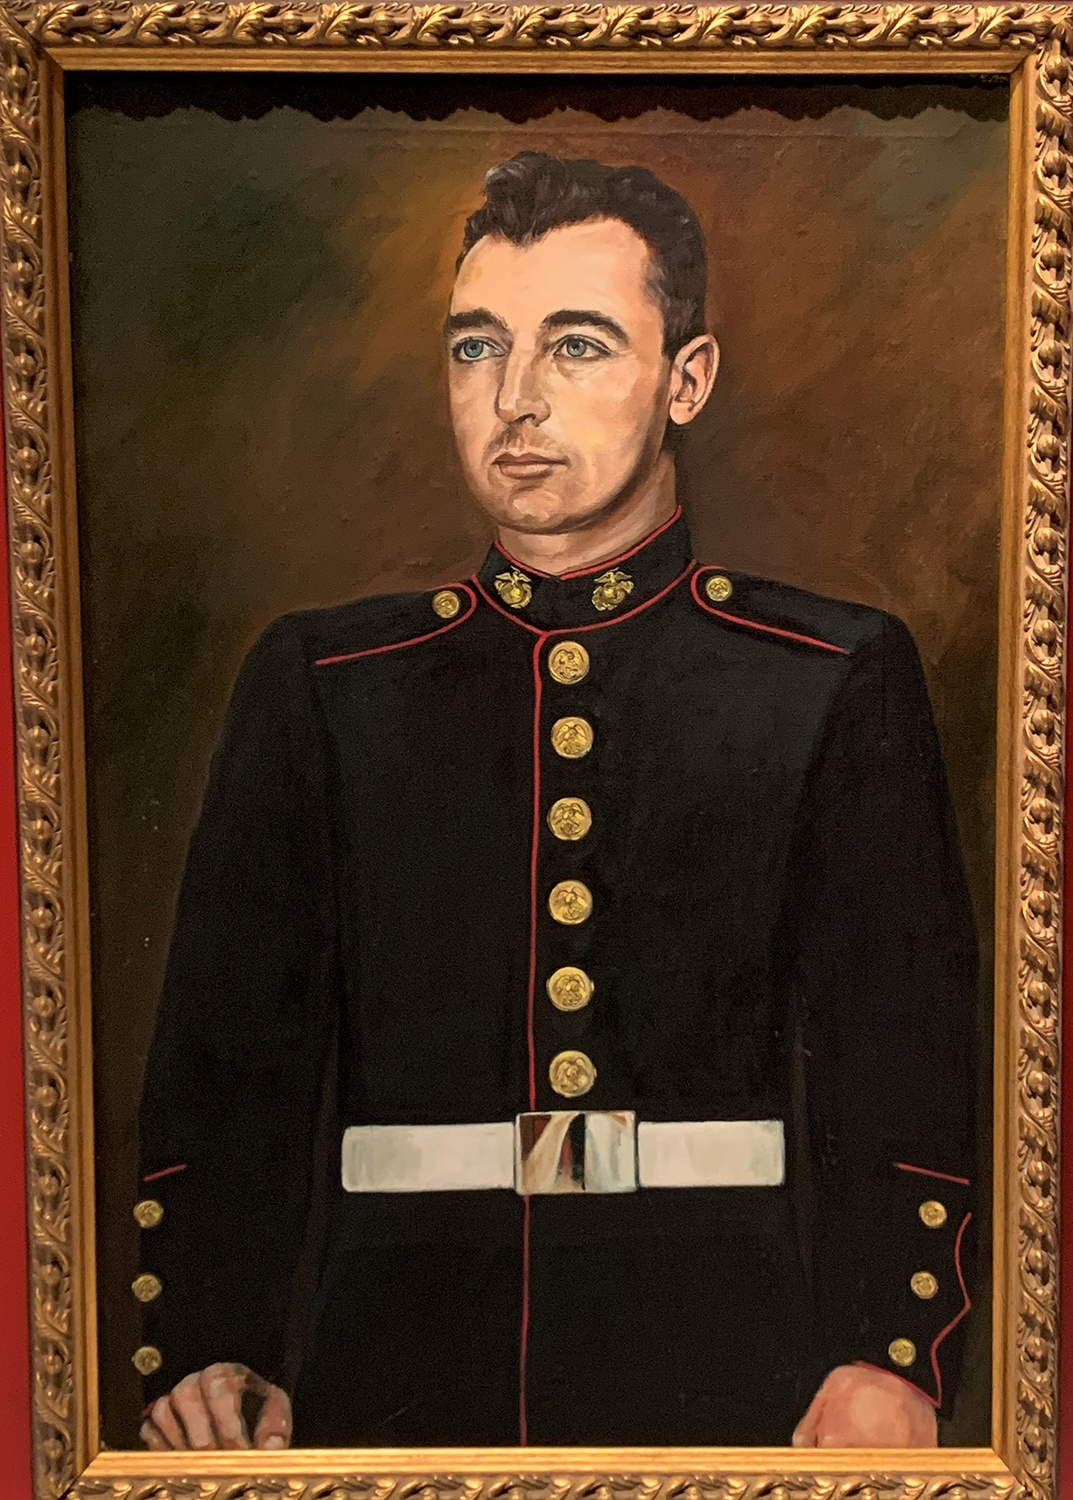 Portrait of Mitchell Paige, artist unknown, oil on canvas, undated. Gift of the Serb National Foundation. Heinz History Center museum collections.